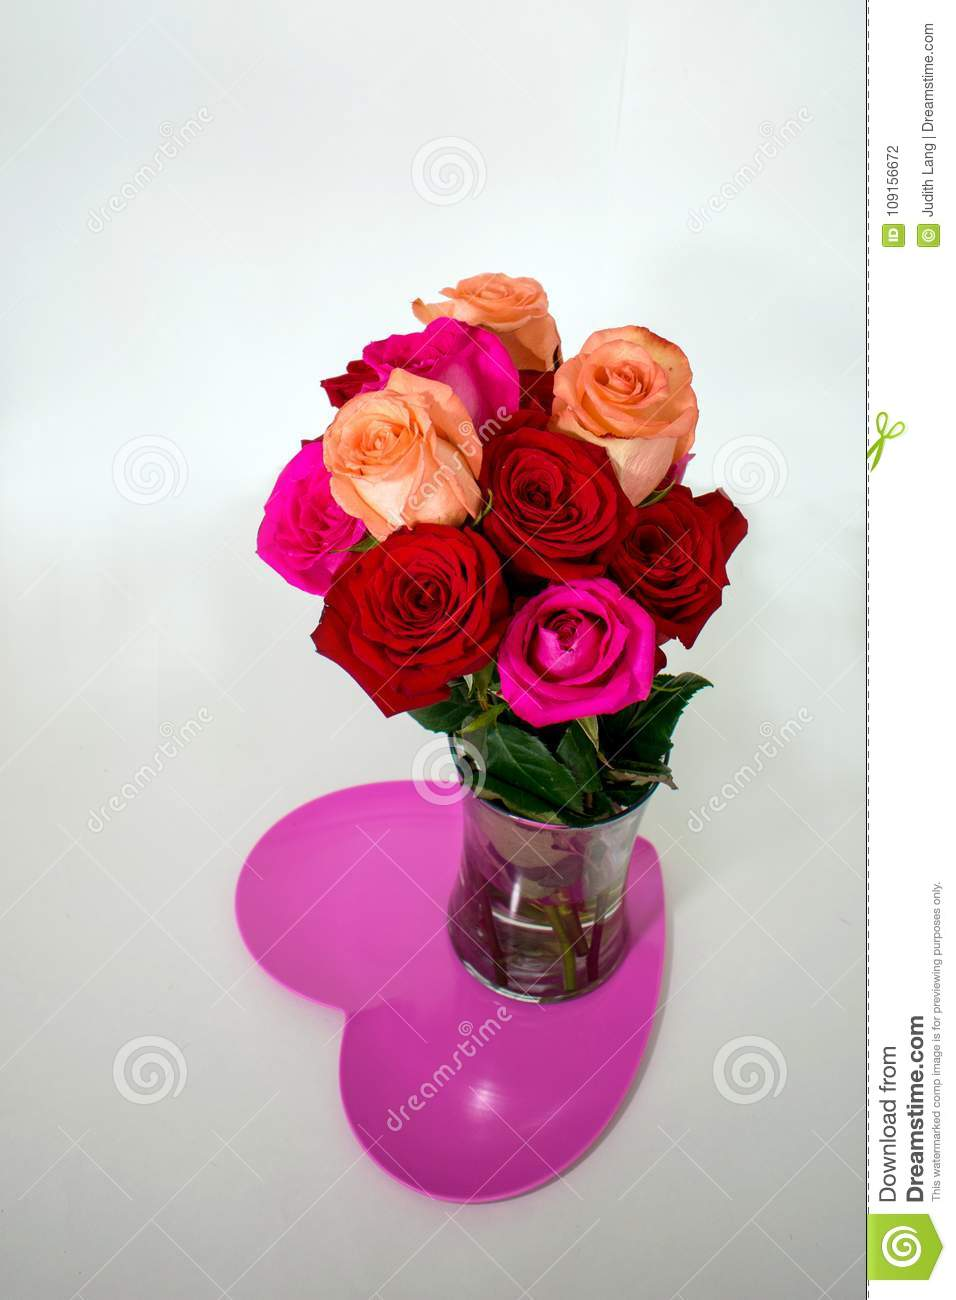 Red and pink roses in vase on top of pink heart